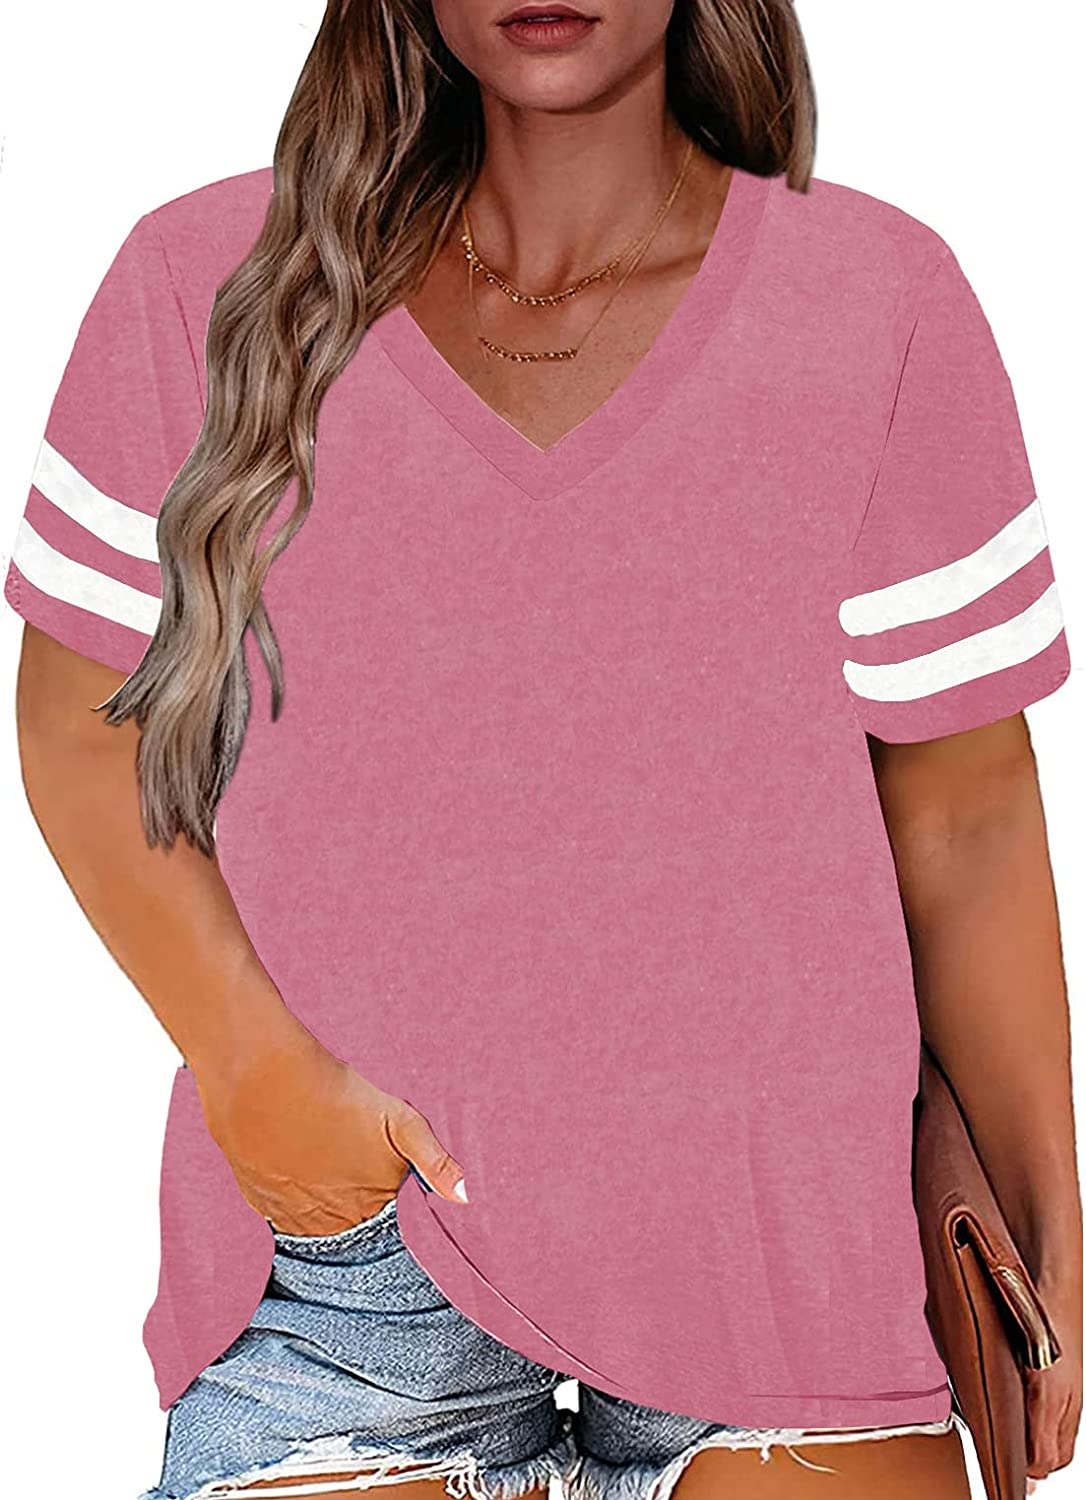 Ladies Plus Size Short Sleeve T Shirts Vintage Blouses Oversized Tunic Tops for Women Shirts Pink S2 1X